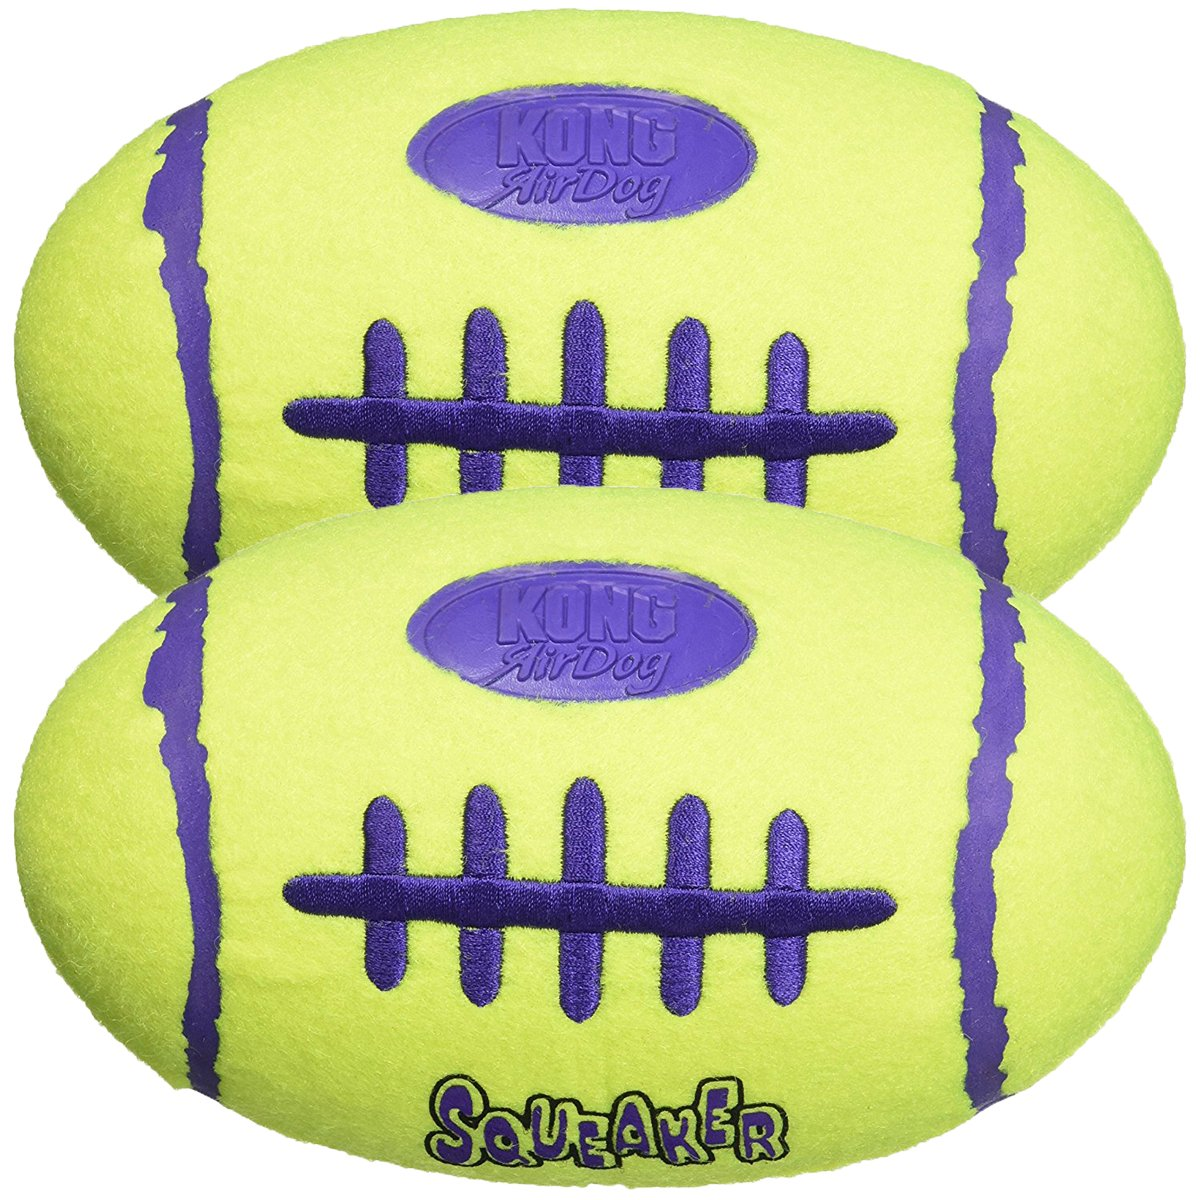 KONG Air Dog Squeaker Dog Toy, Large 2-Pack by KONG